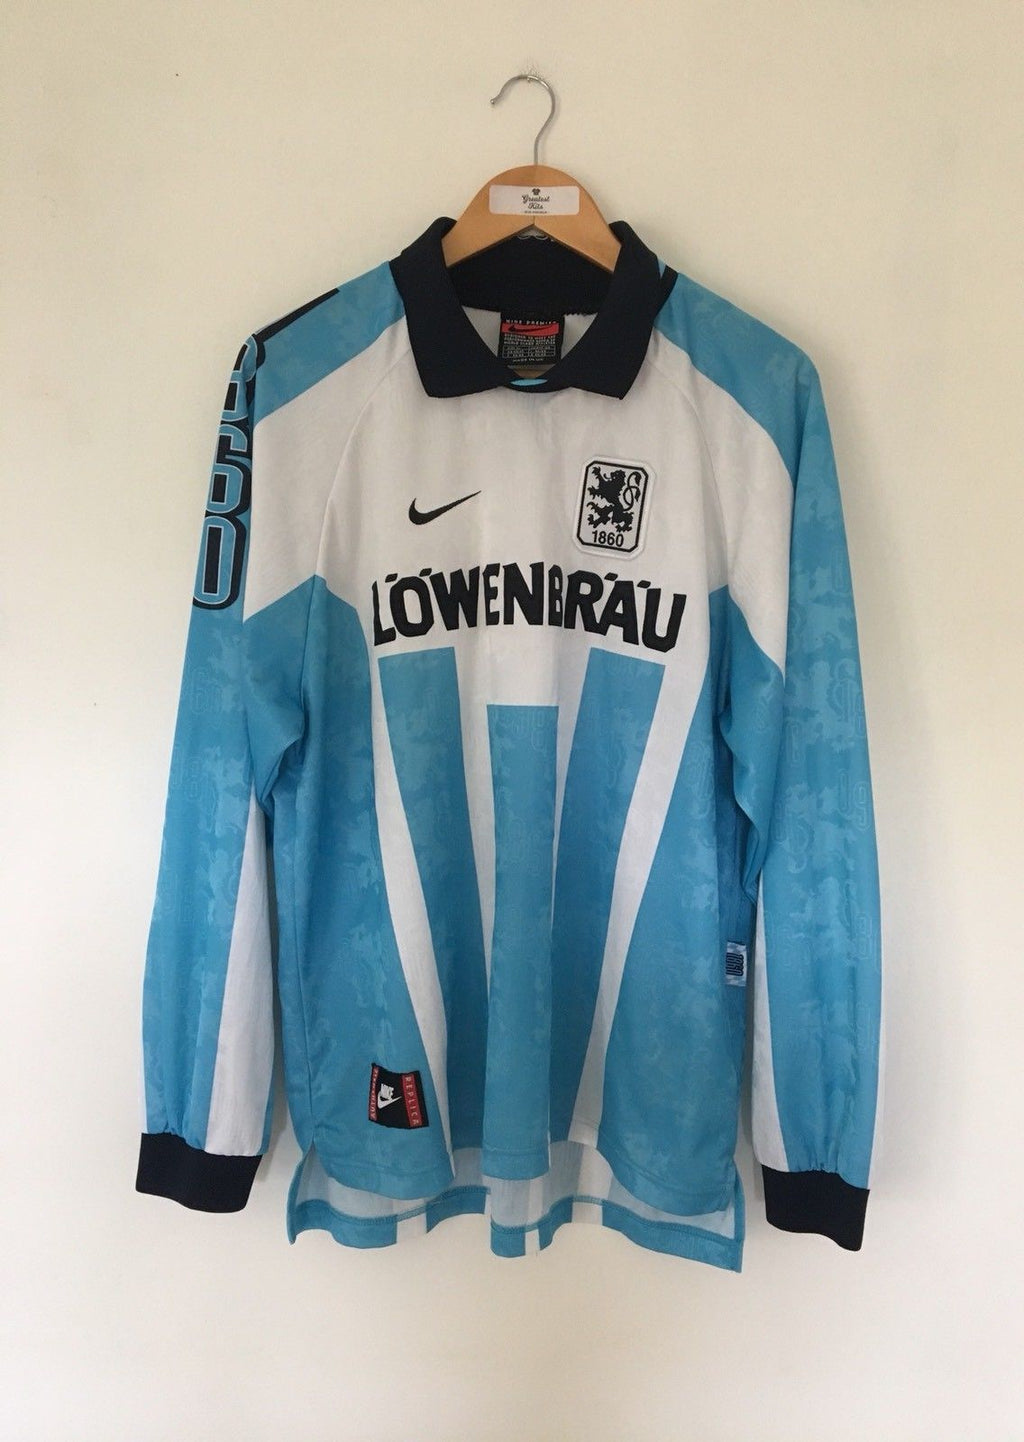 1996/97 1860 Munich Home L/S Shirt (XL) 9.5/10